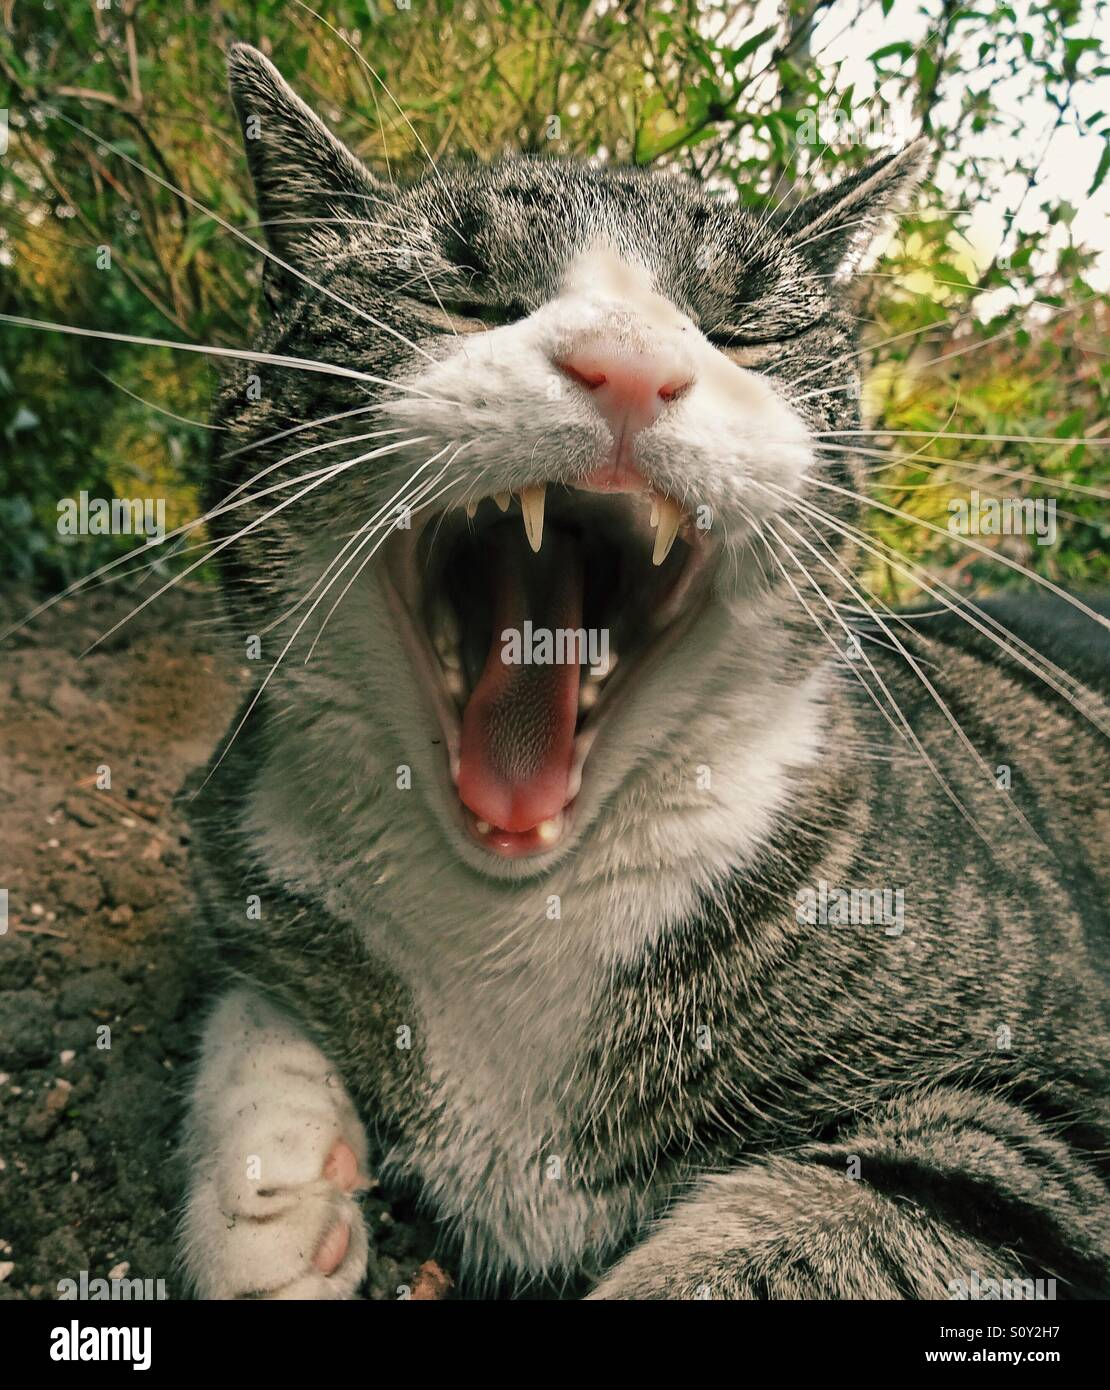 ...yawning cat...! - Stock Image